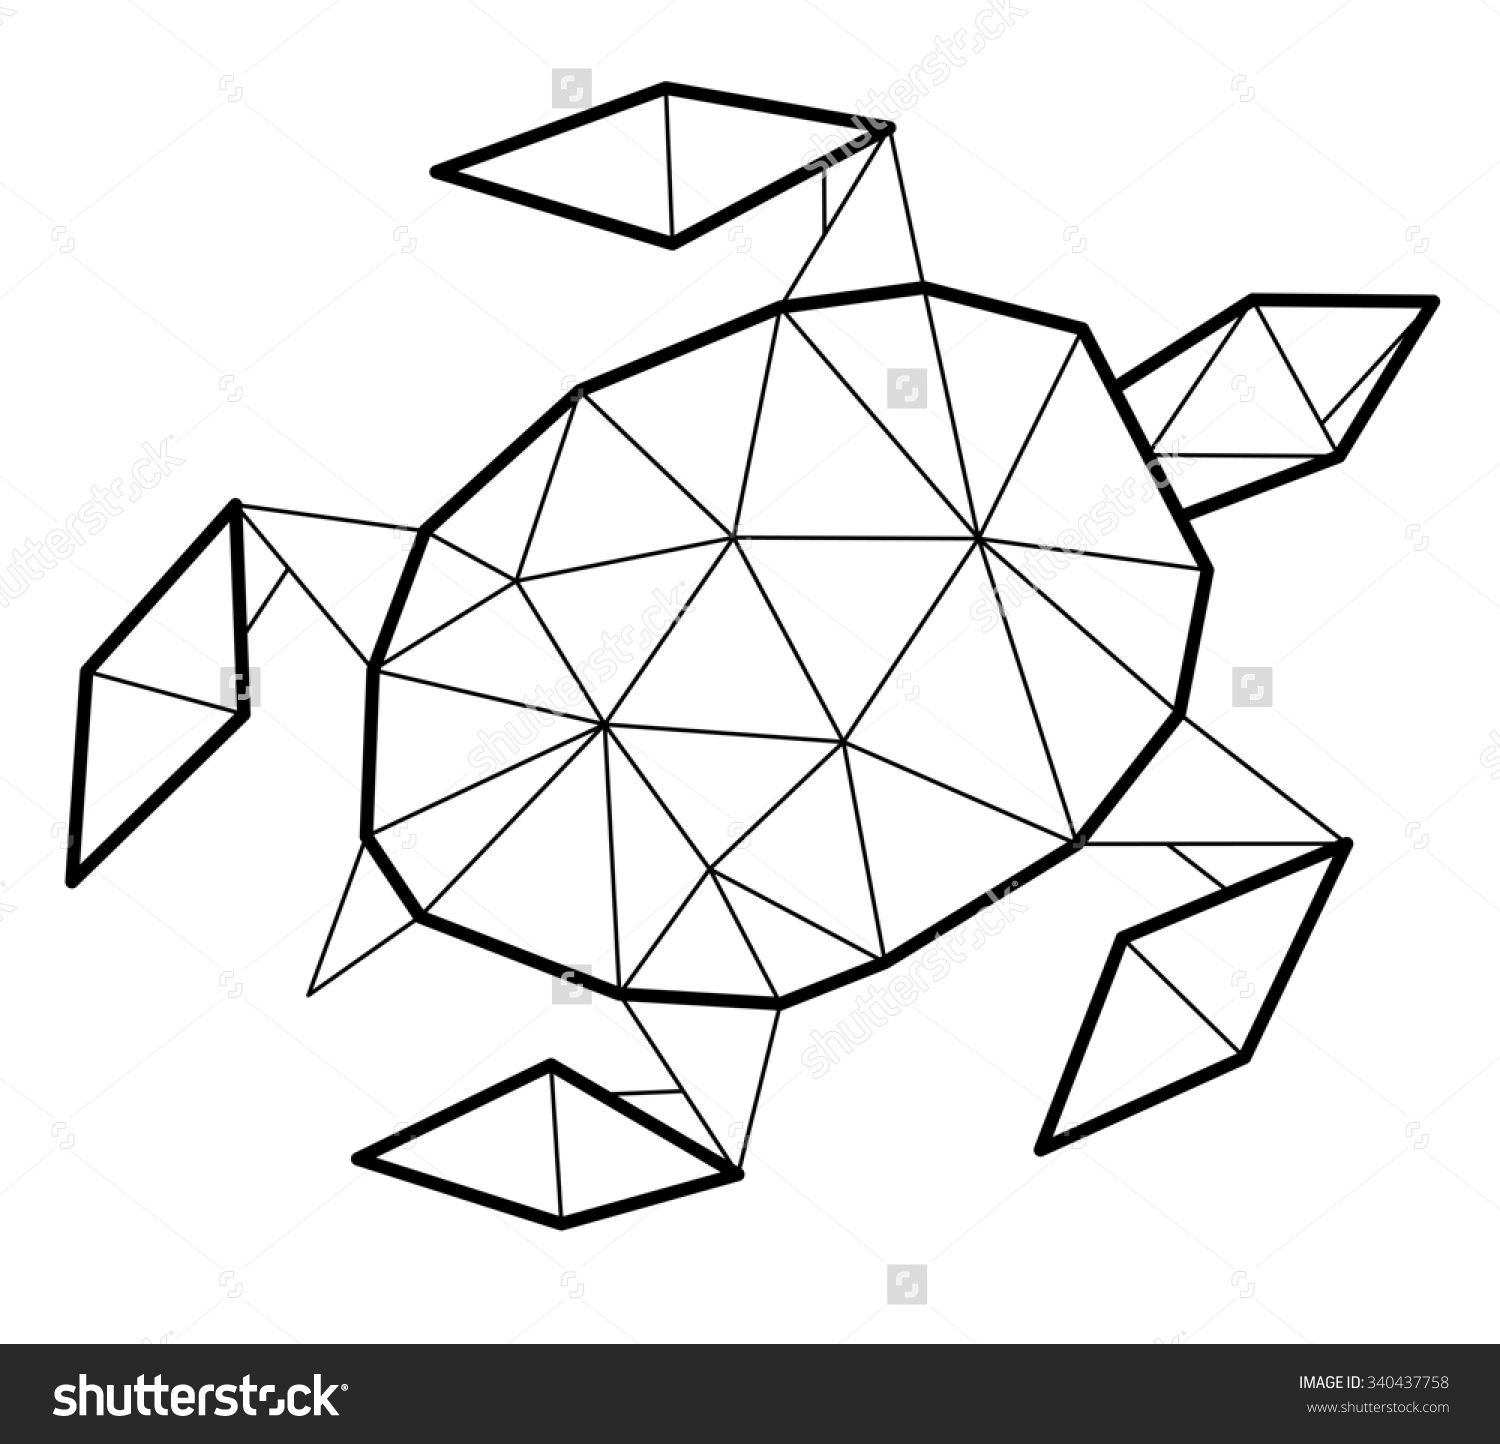 geometric turtle Google Search Dibujo geométrico